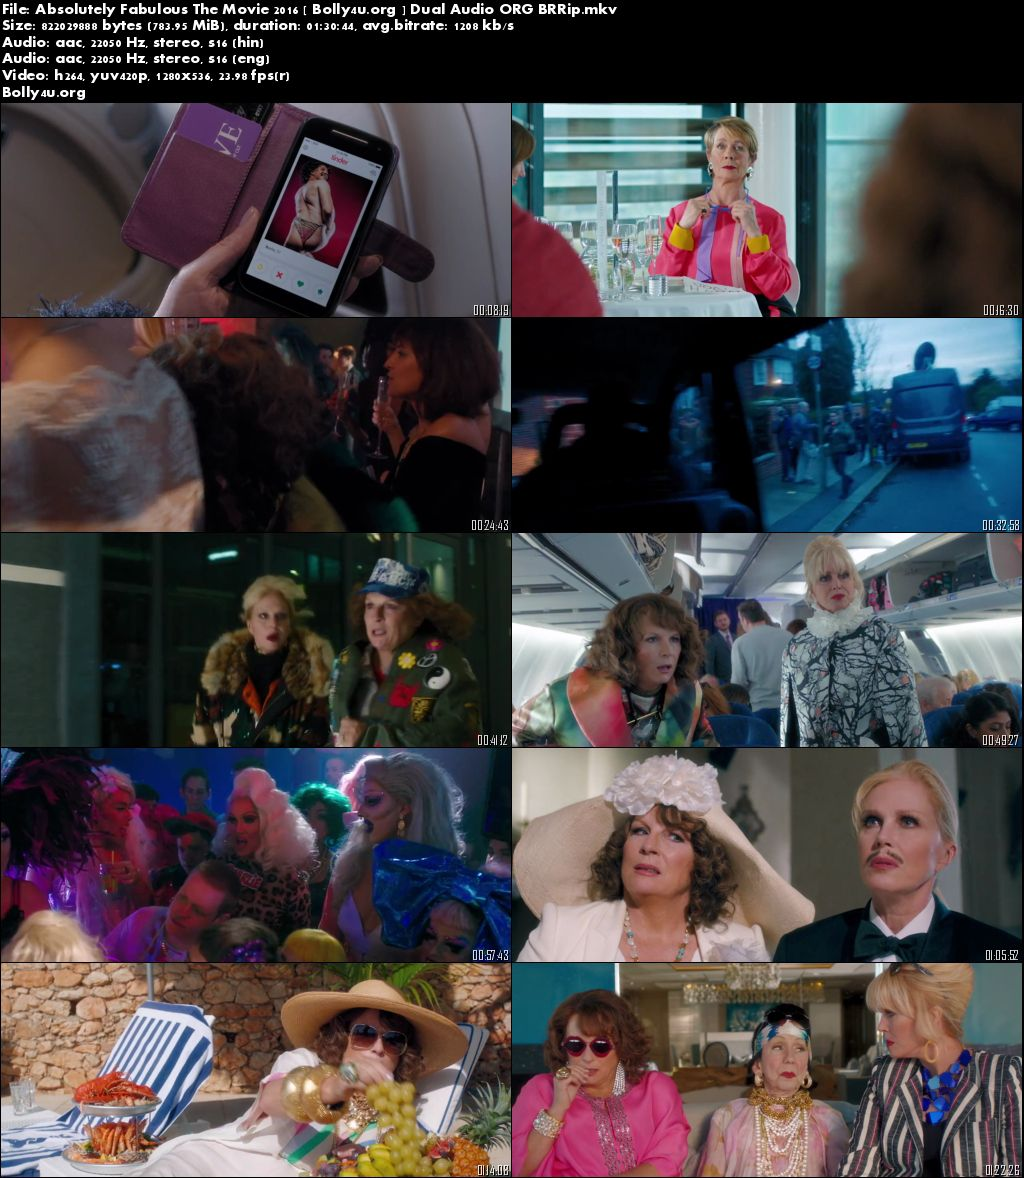 Absolutely Fabulous: The Movie 2016 BRRip Dual Audio ORG 750Mb Download